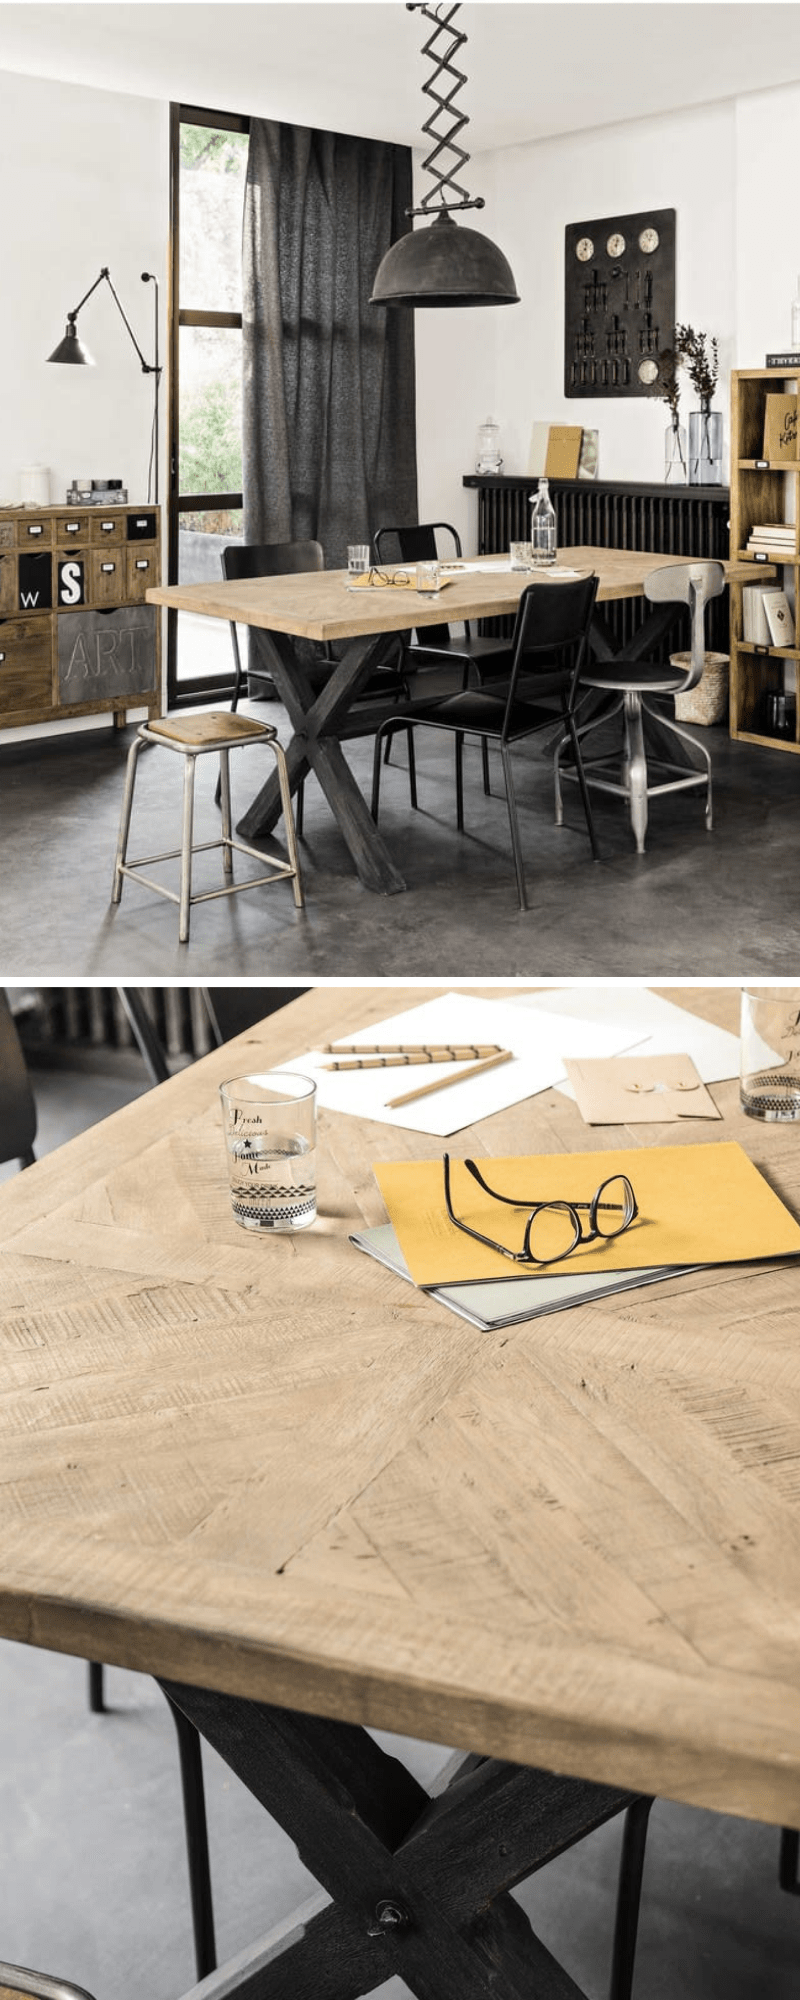 mango wood tabletop industrial style dining table Maisons du Monde with metallic effect base